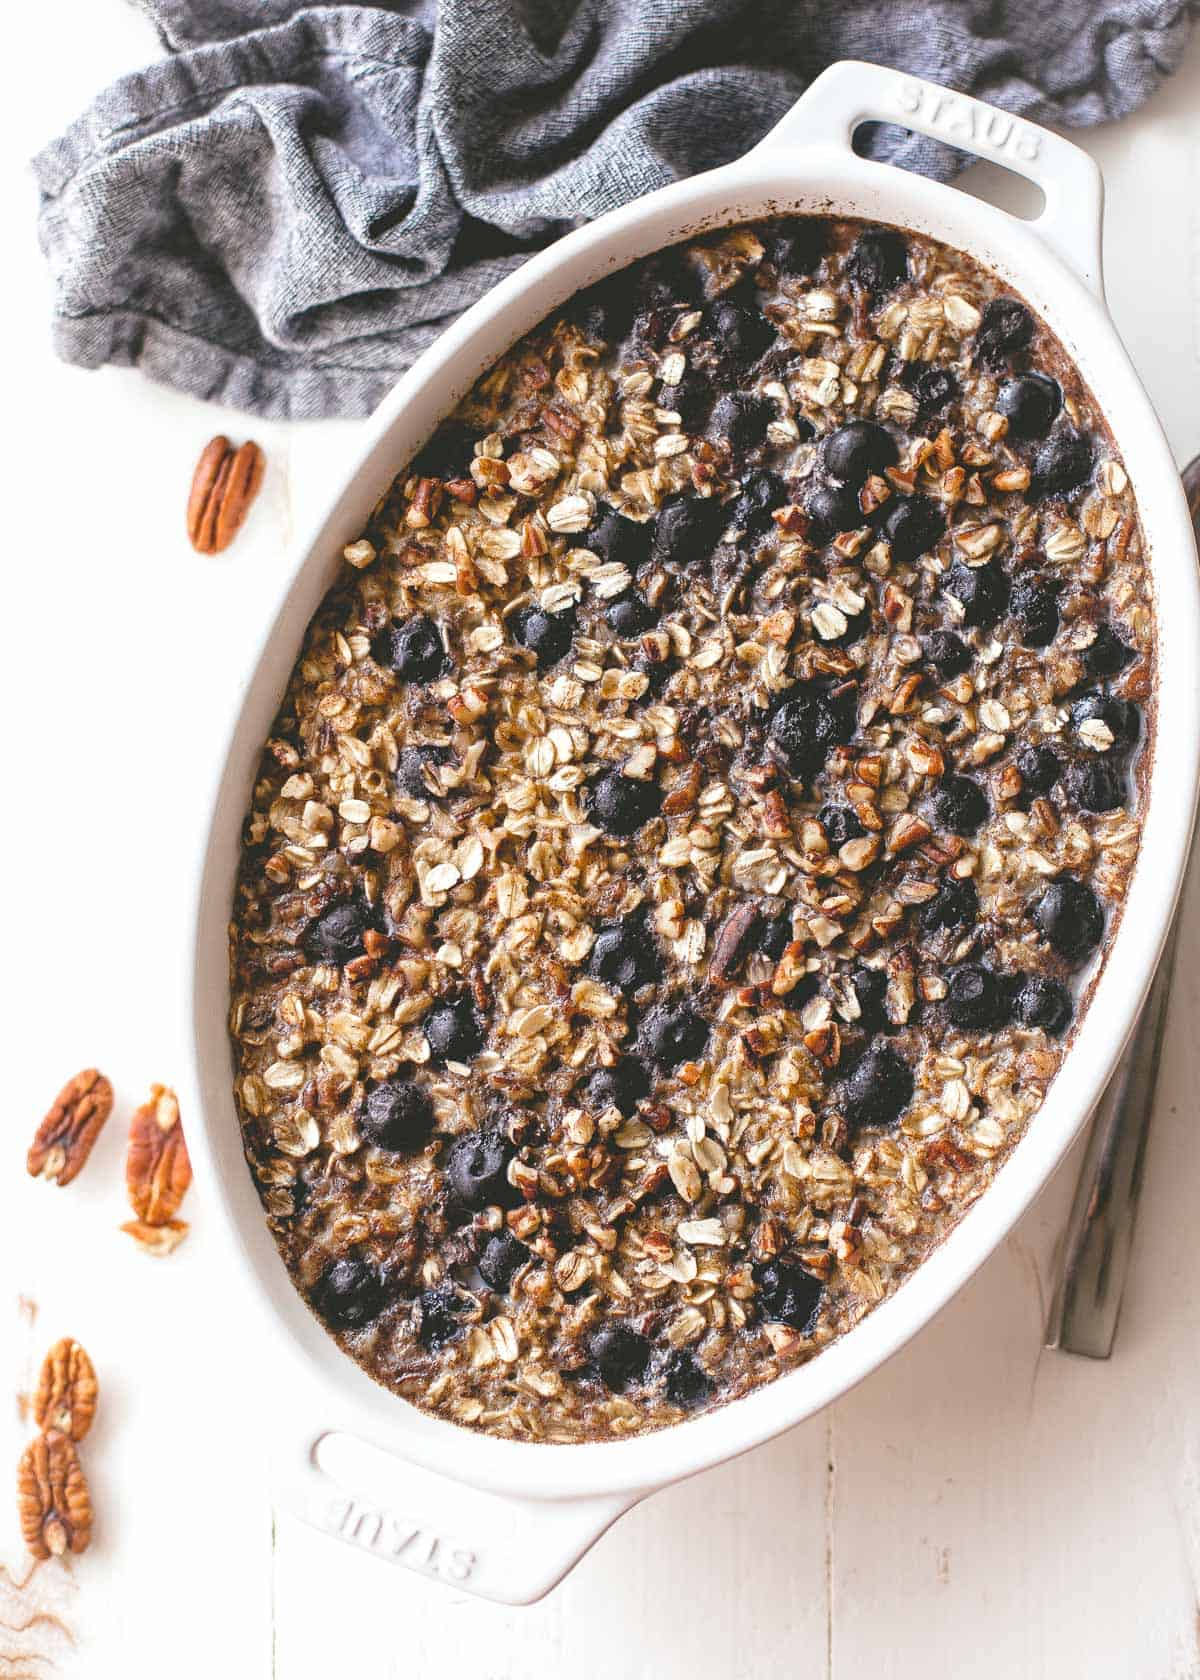 baked blueberry oatmeal in a white baking dish